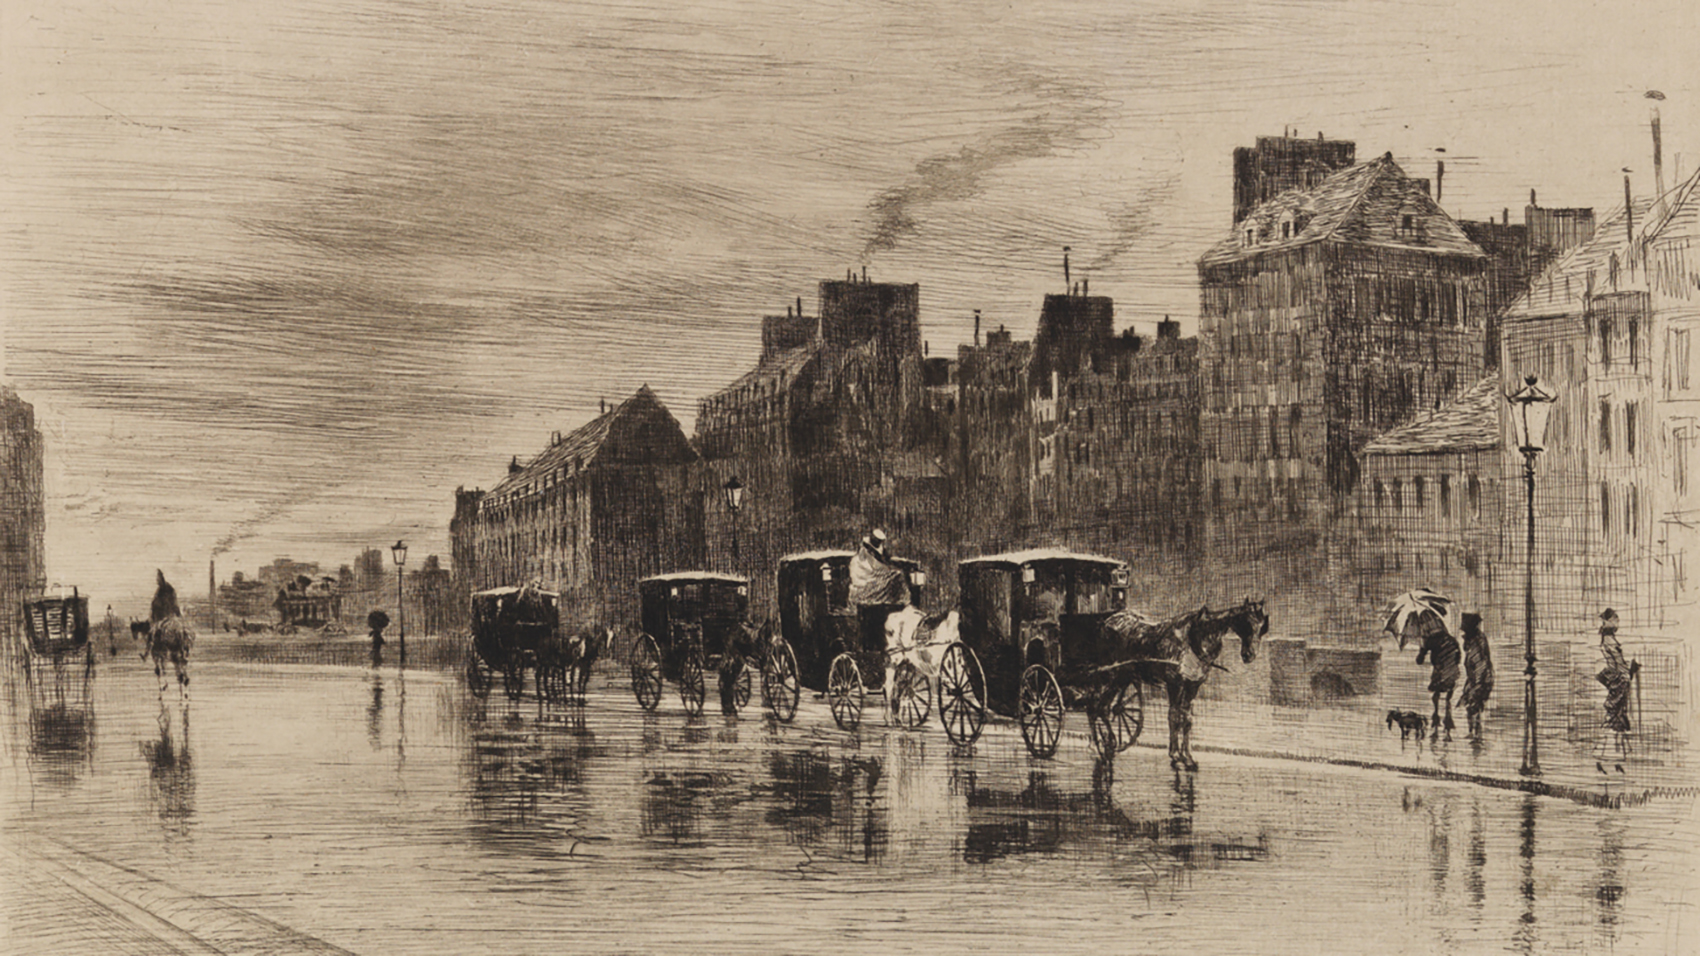 Félix Buhot, A Winter Morning Beside the Hotel-Dieu (Une Matinée d'Hiver au Quai de L'Hotel-Dieu) (detail), 1876, Etching and drypoint on laid paper, state v/xv. Smart Museum of Art, The University of Chicago,Gift of Brenda F. and Joseph V. Smith, 2003.